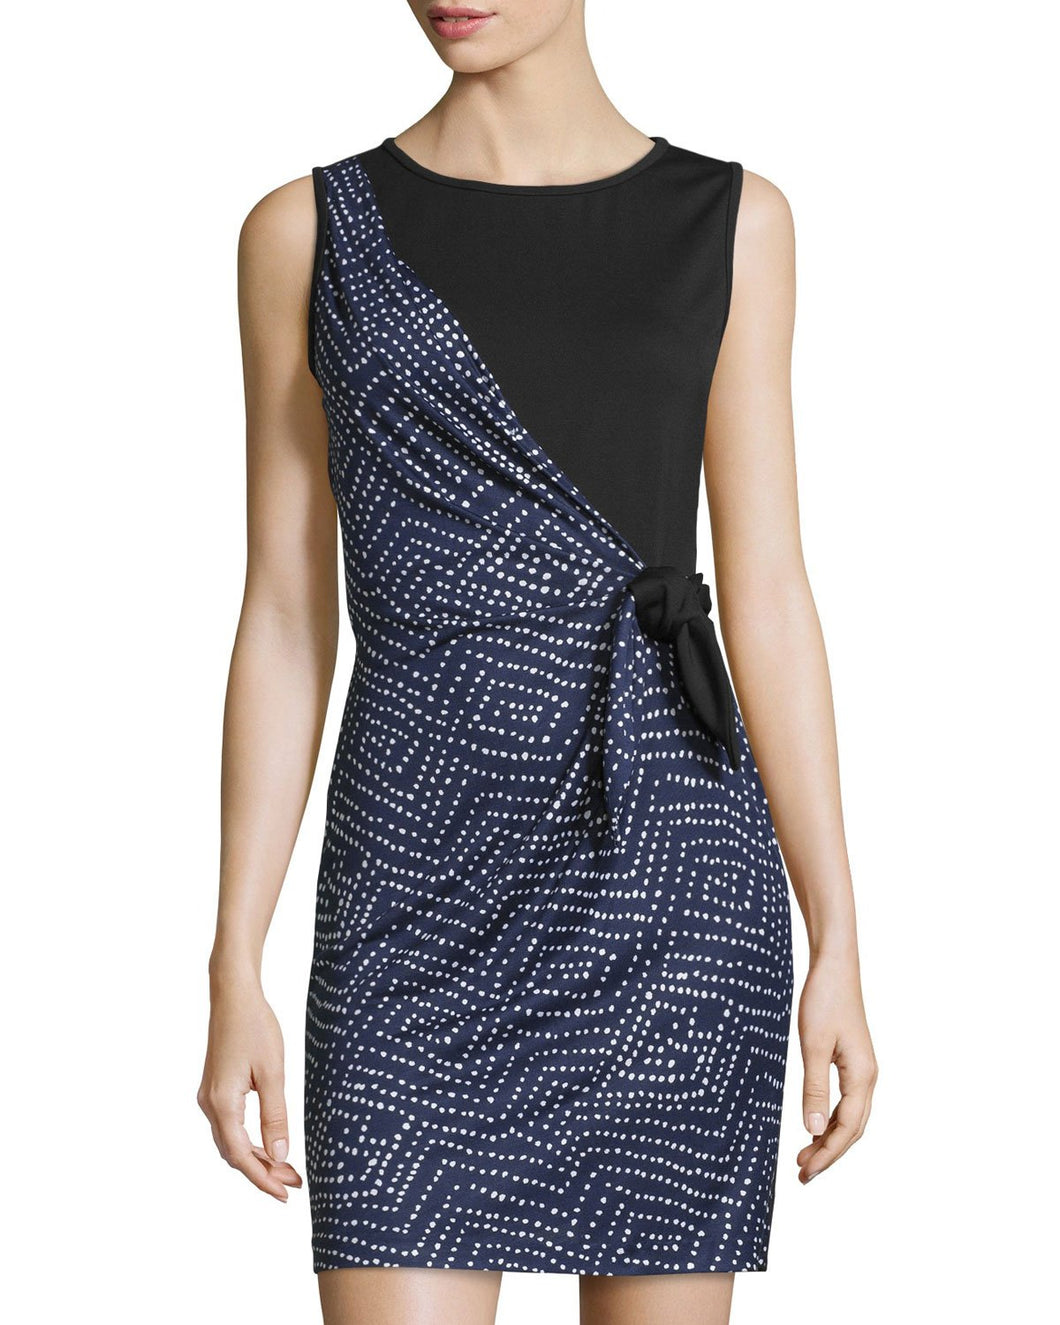 Diane von Furstenberg Dhalia Silk Printed Wrap Dress, Batik Midnight/Black, 12 - Vancelette Global Art Acquisitions